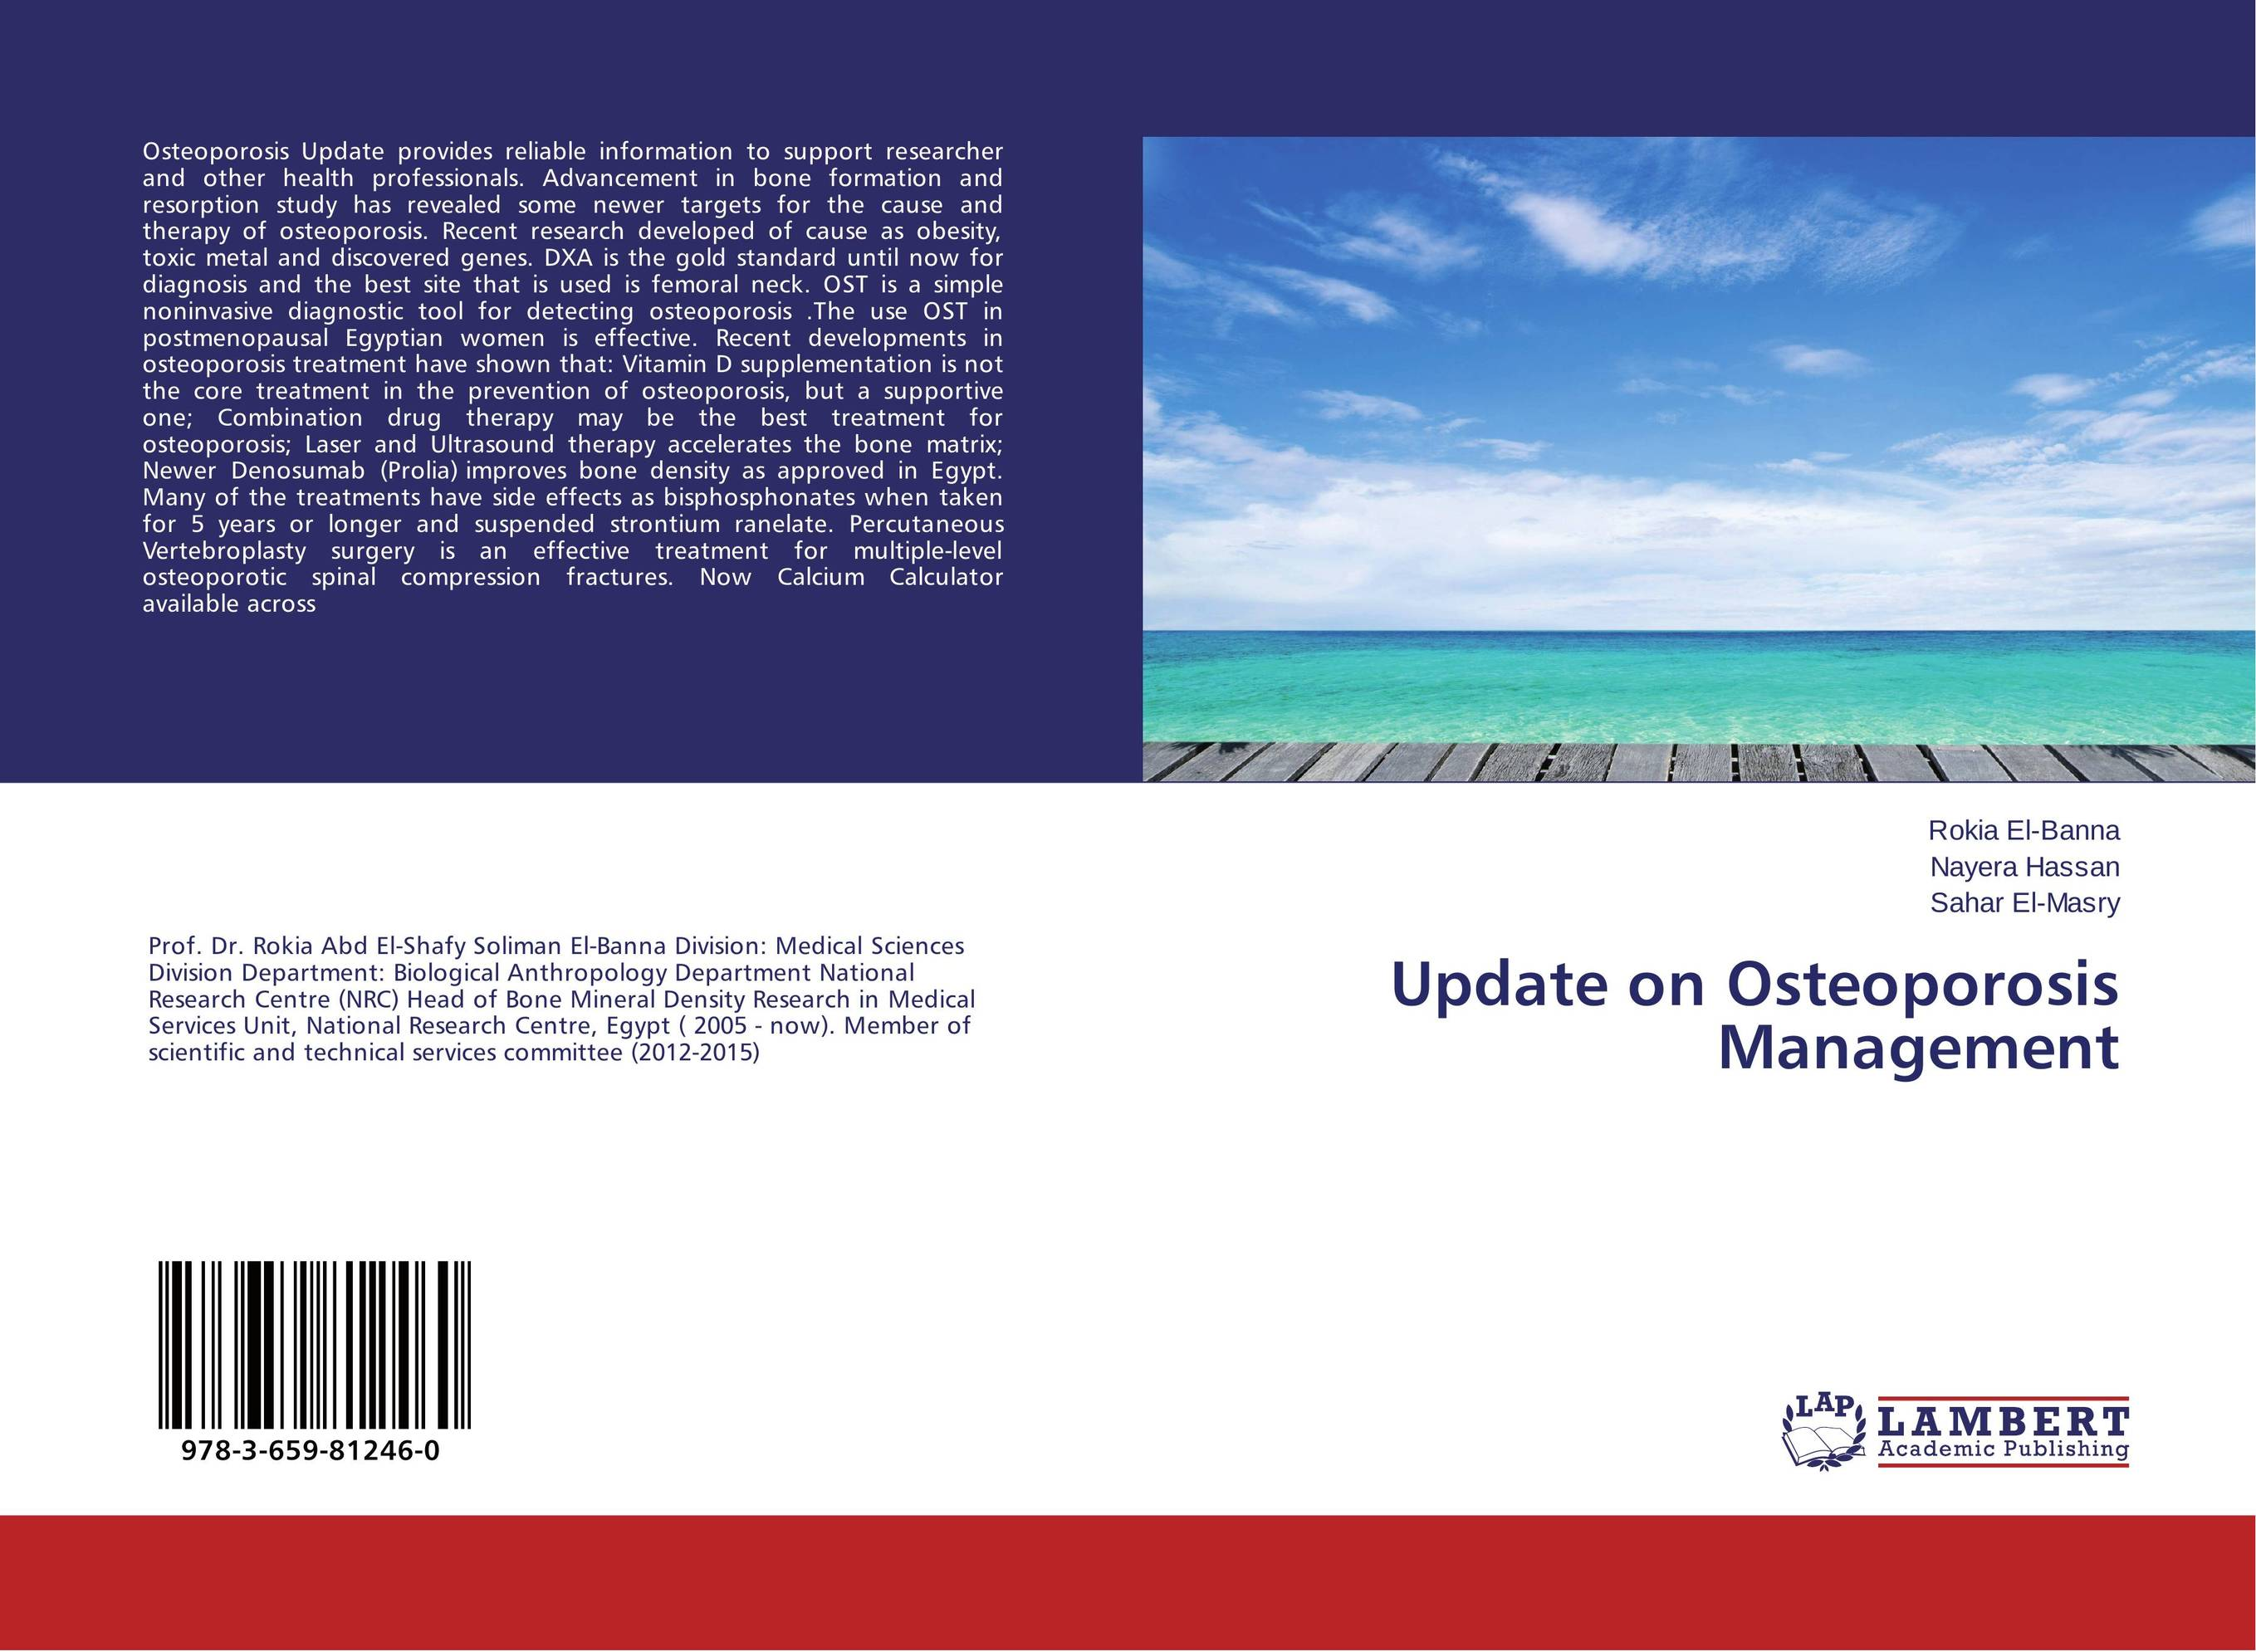 Update on Osteoporosis Management osteoporosis prevention